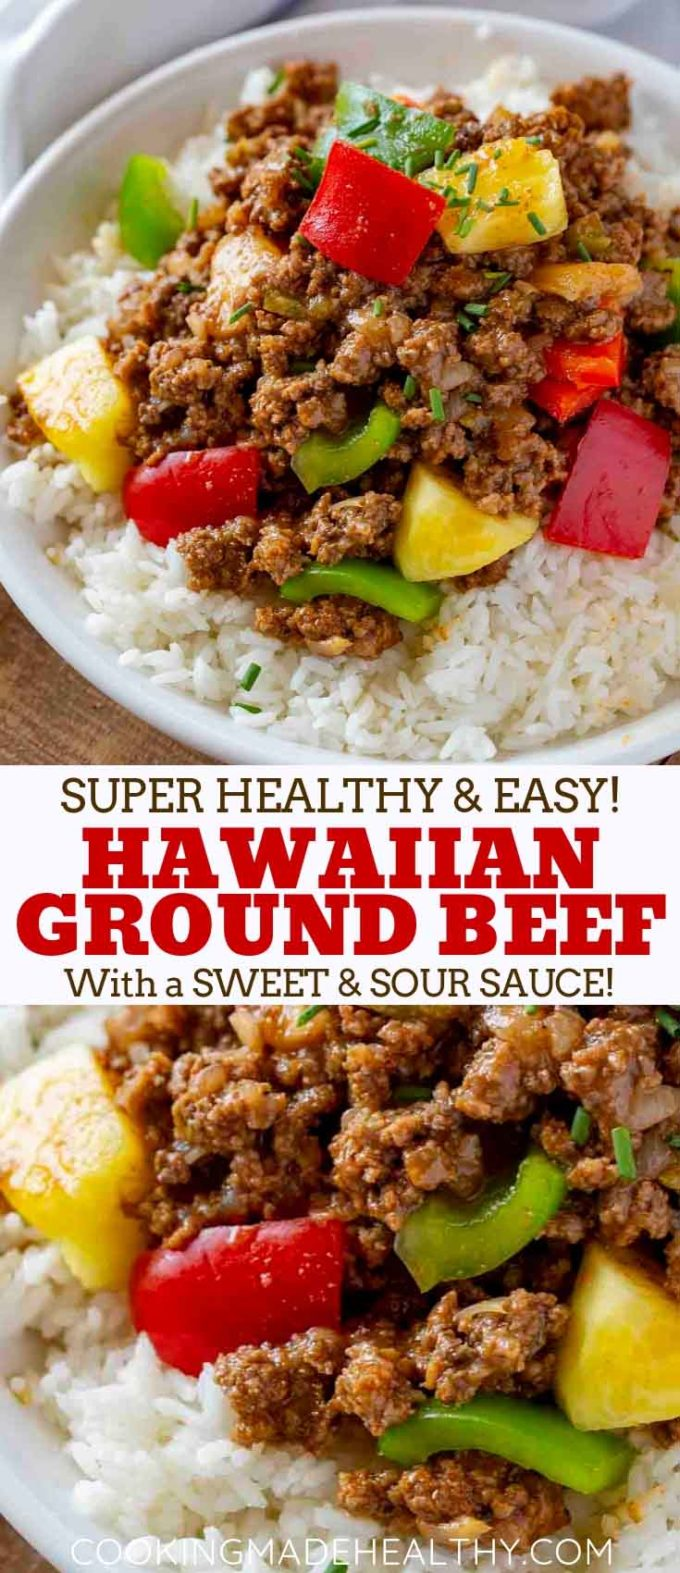 Hawaiian Beef Stir Fry with Sweet and Sour Sauce